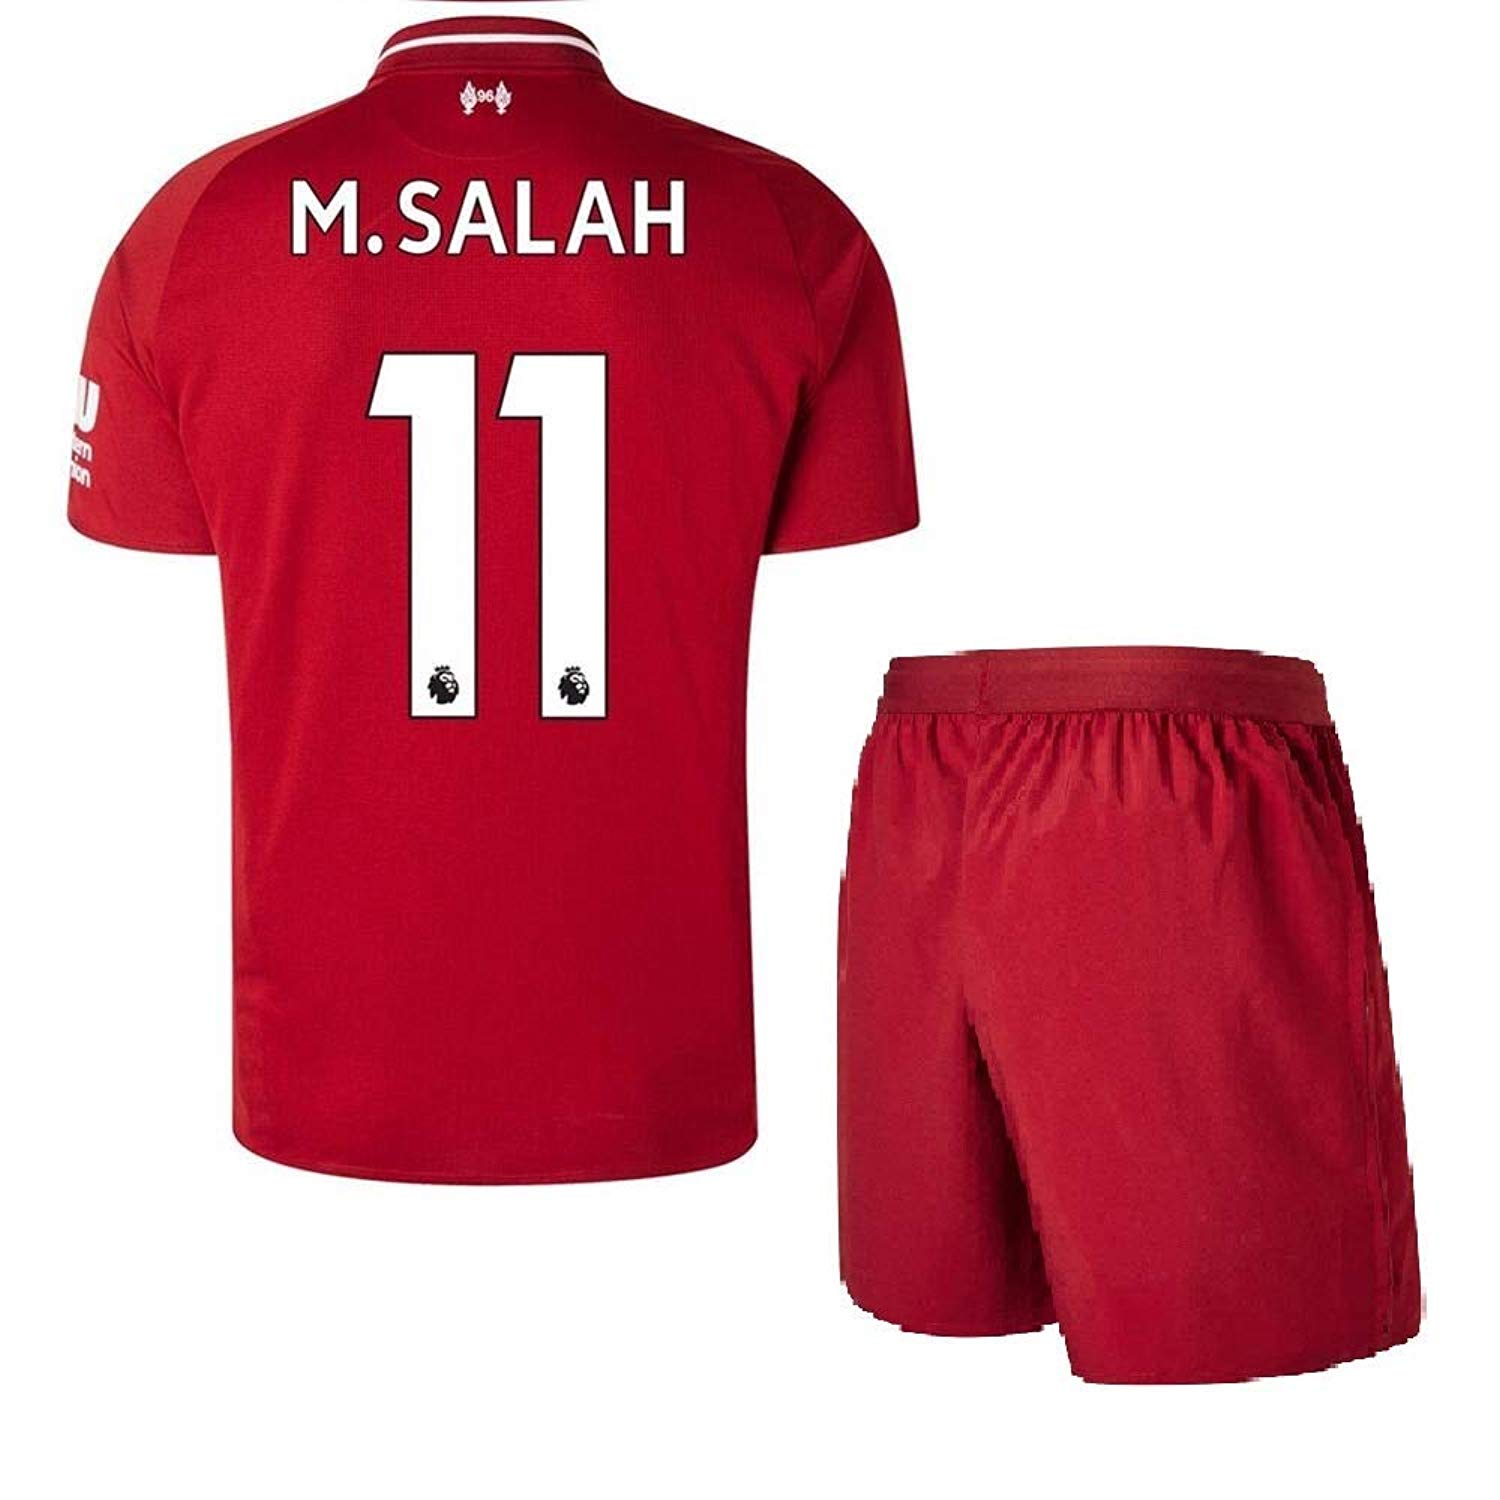 Kids Liverpool Home Jerseys #11 M Salah Jerseys 2018-2019 Soccer Jersey Red(S-XL)